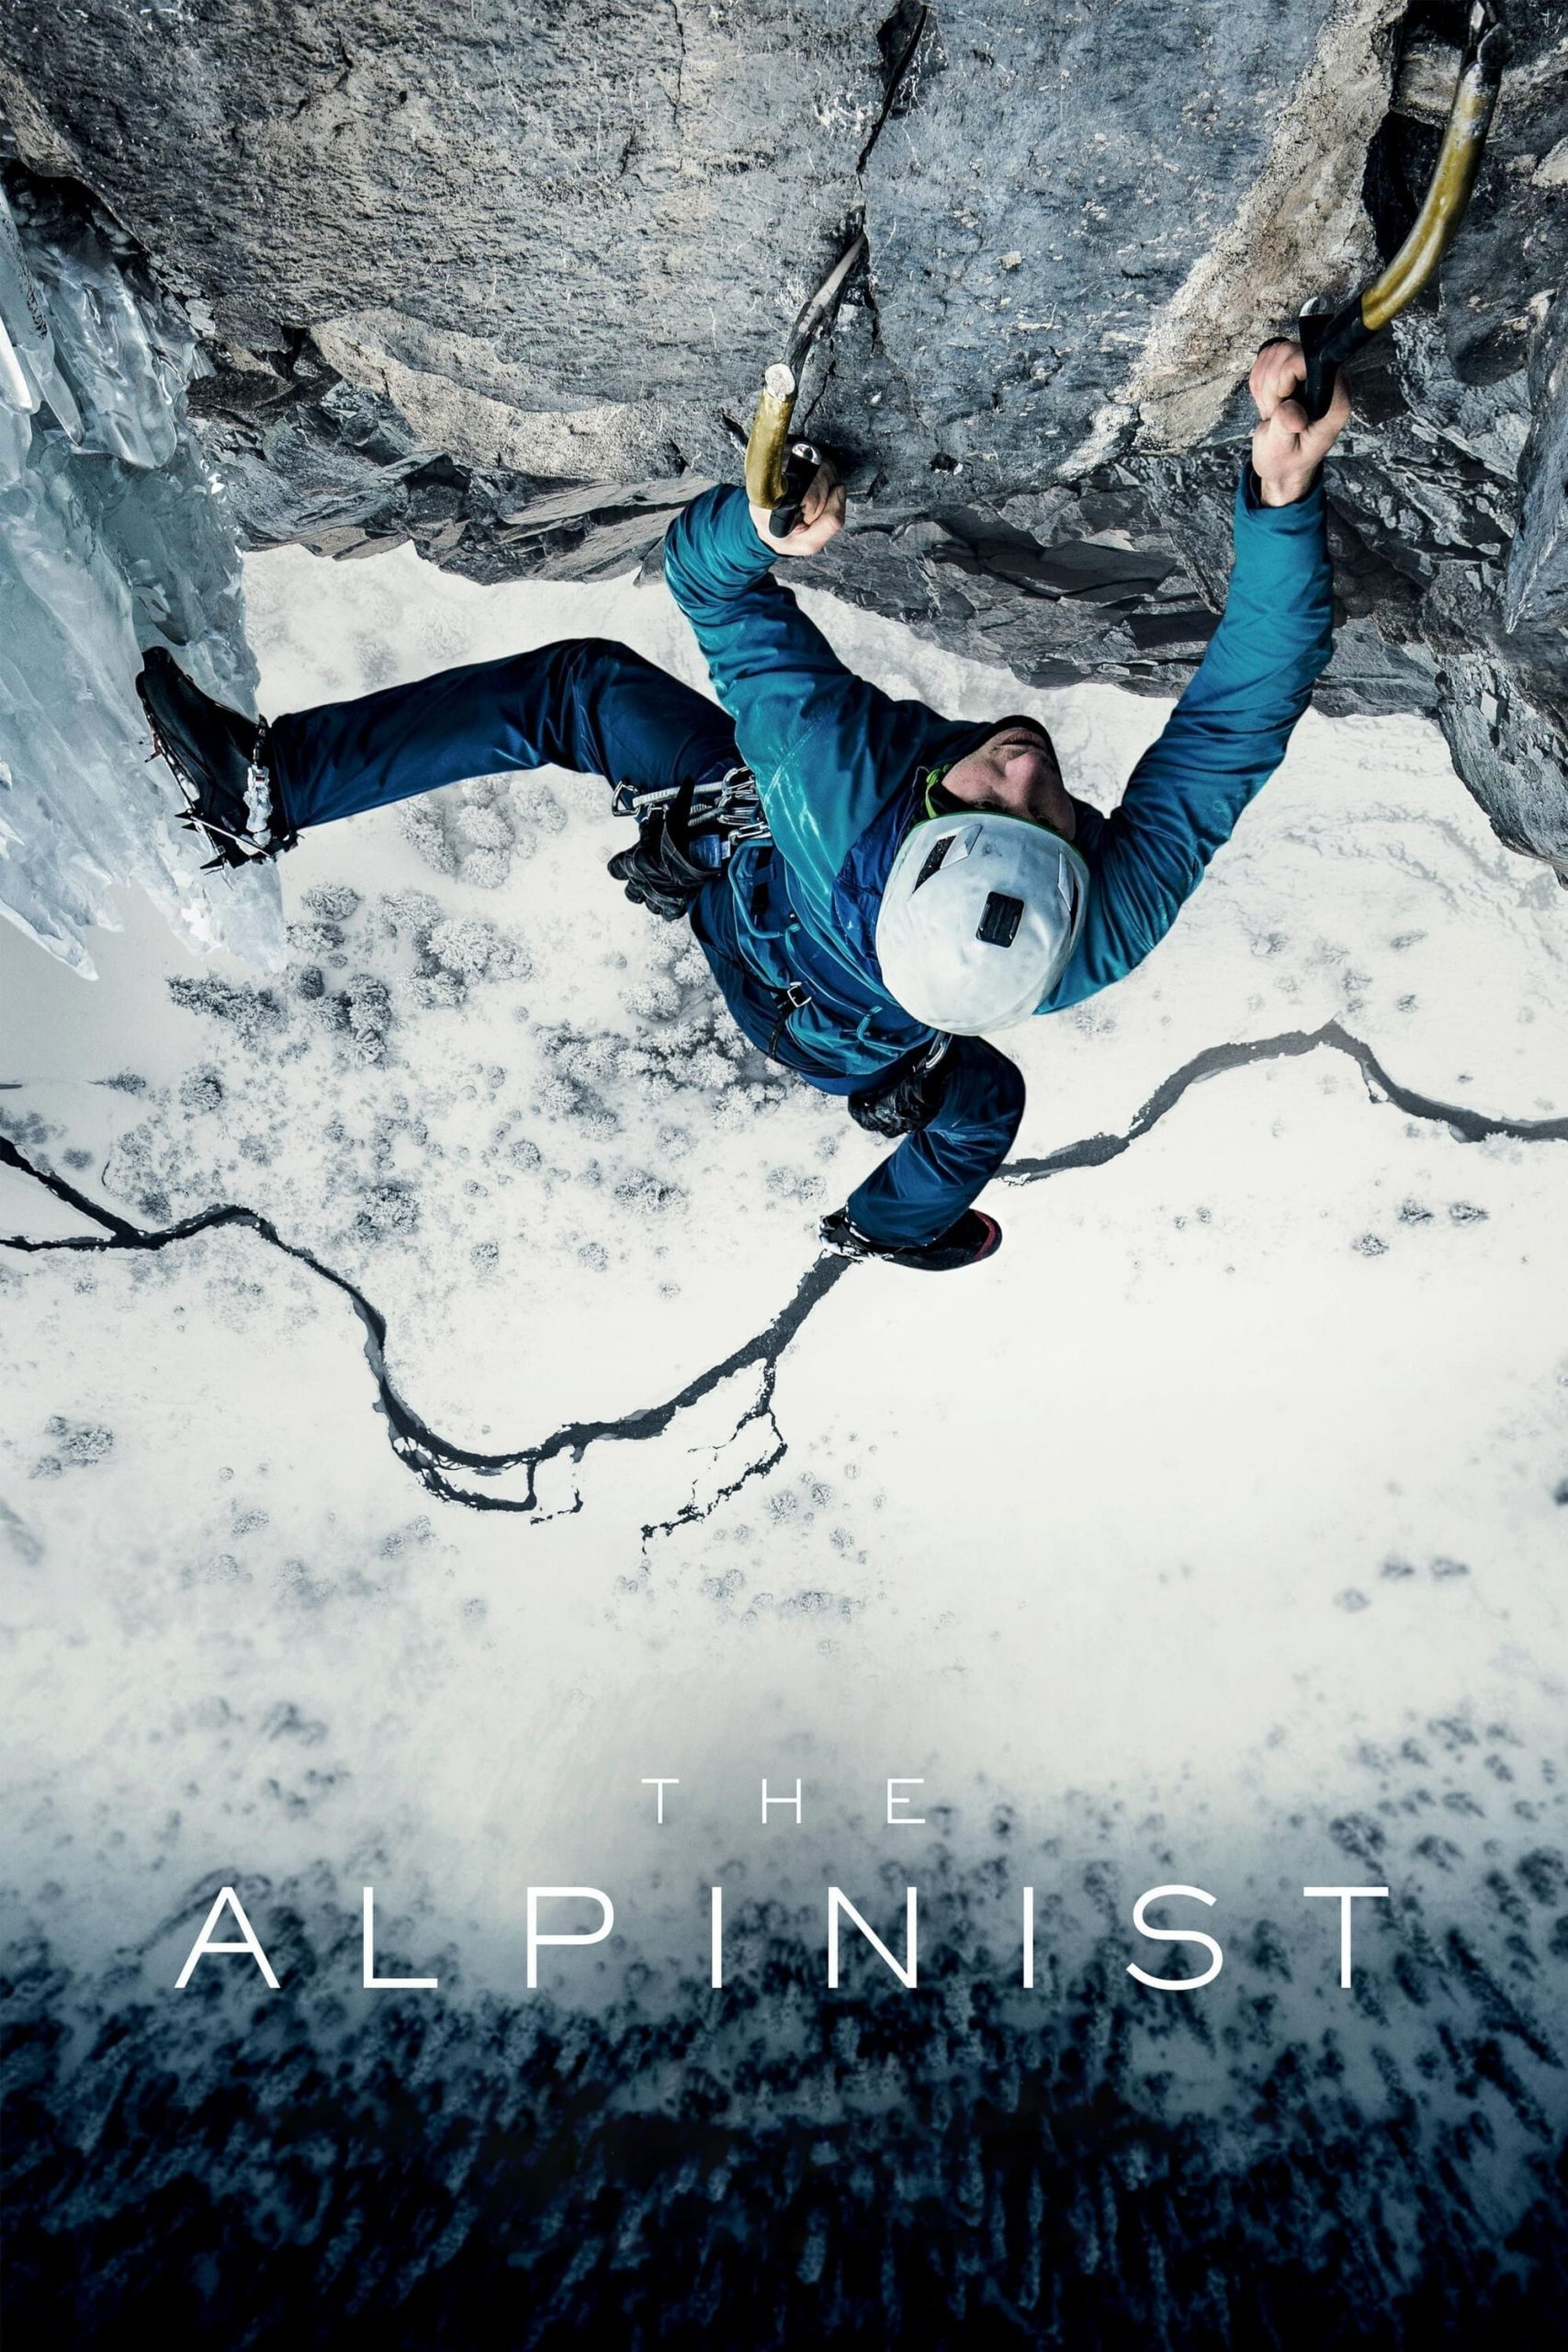 Poster for The Alpinist